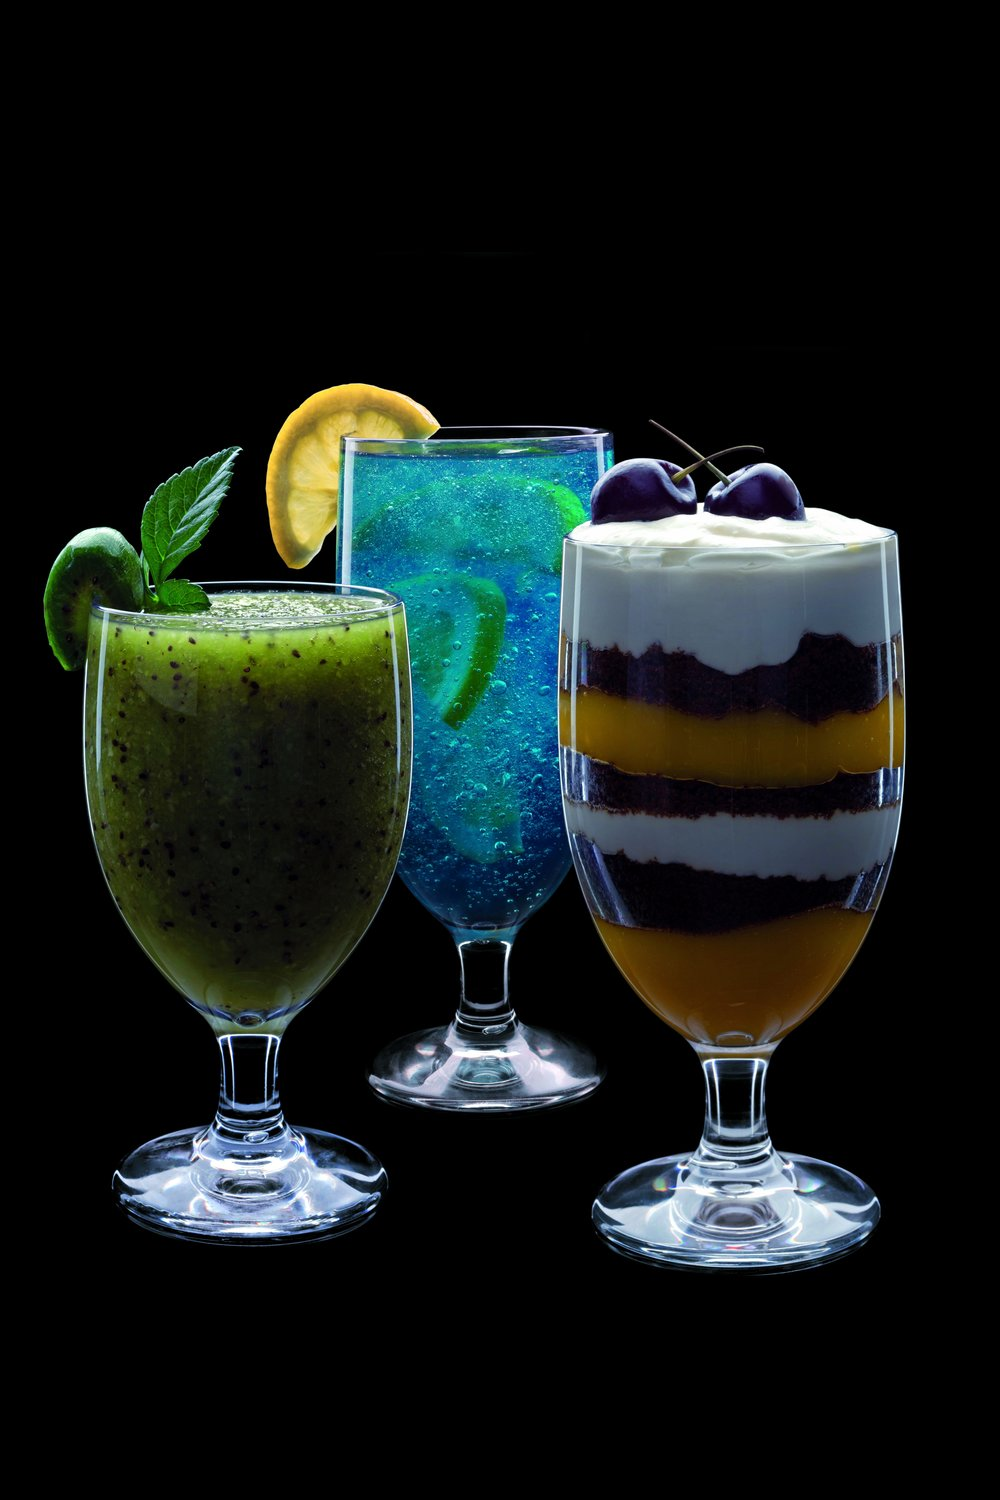 Water Soda Goblets Range - Black Background.jpg